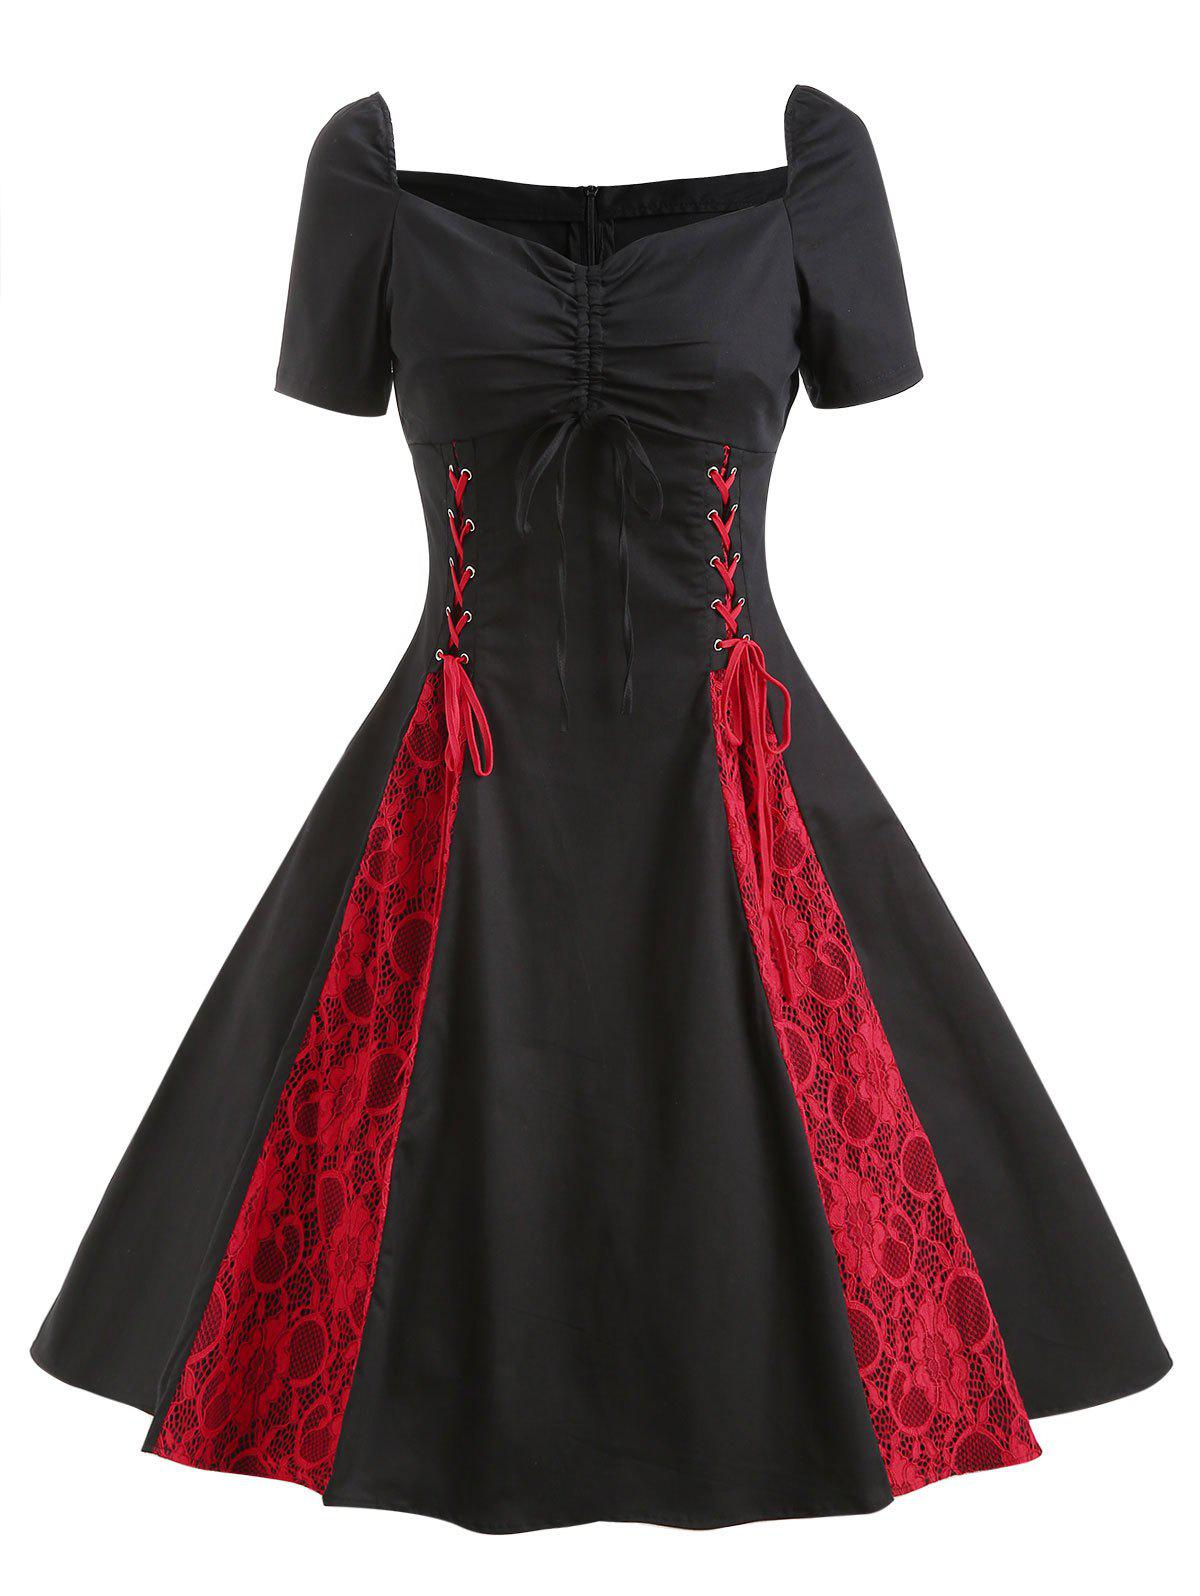 Online Vintage Lace Insert Ruched Pin Up Dress